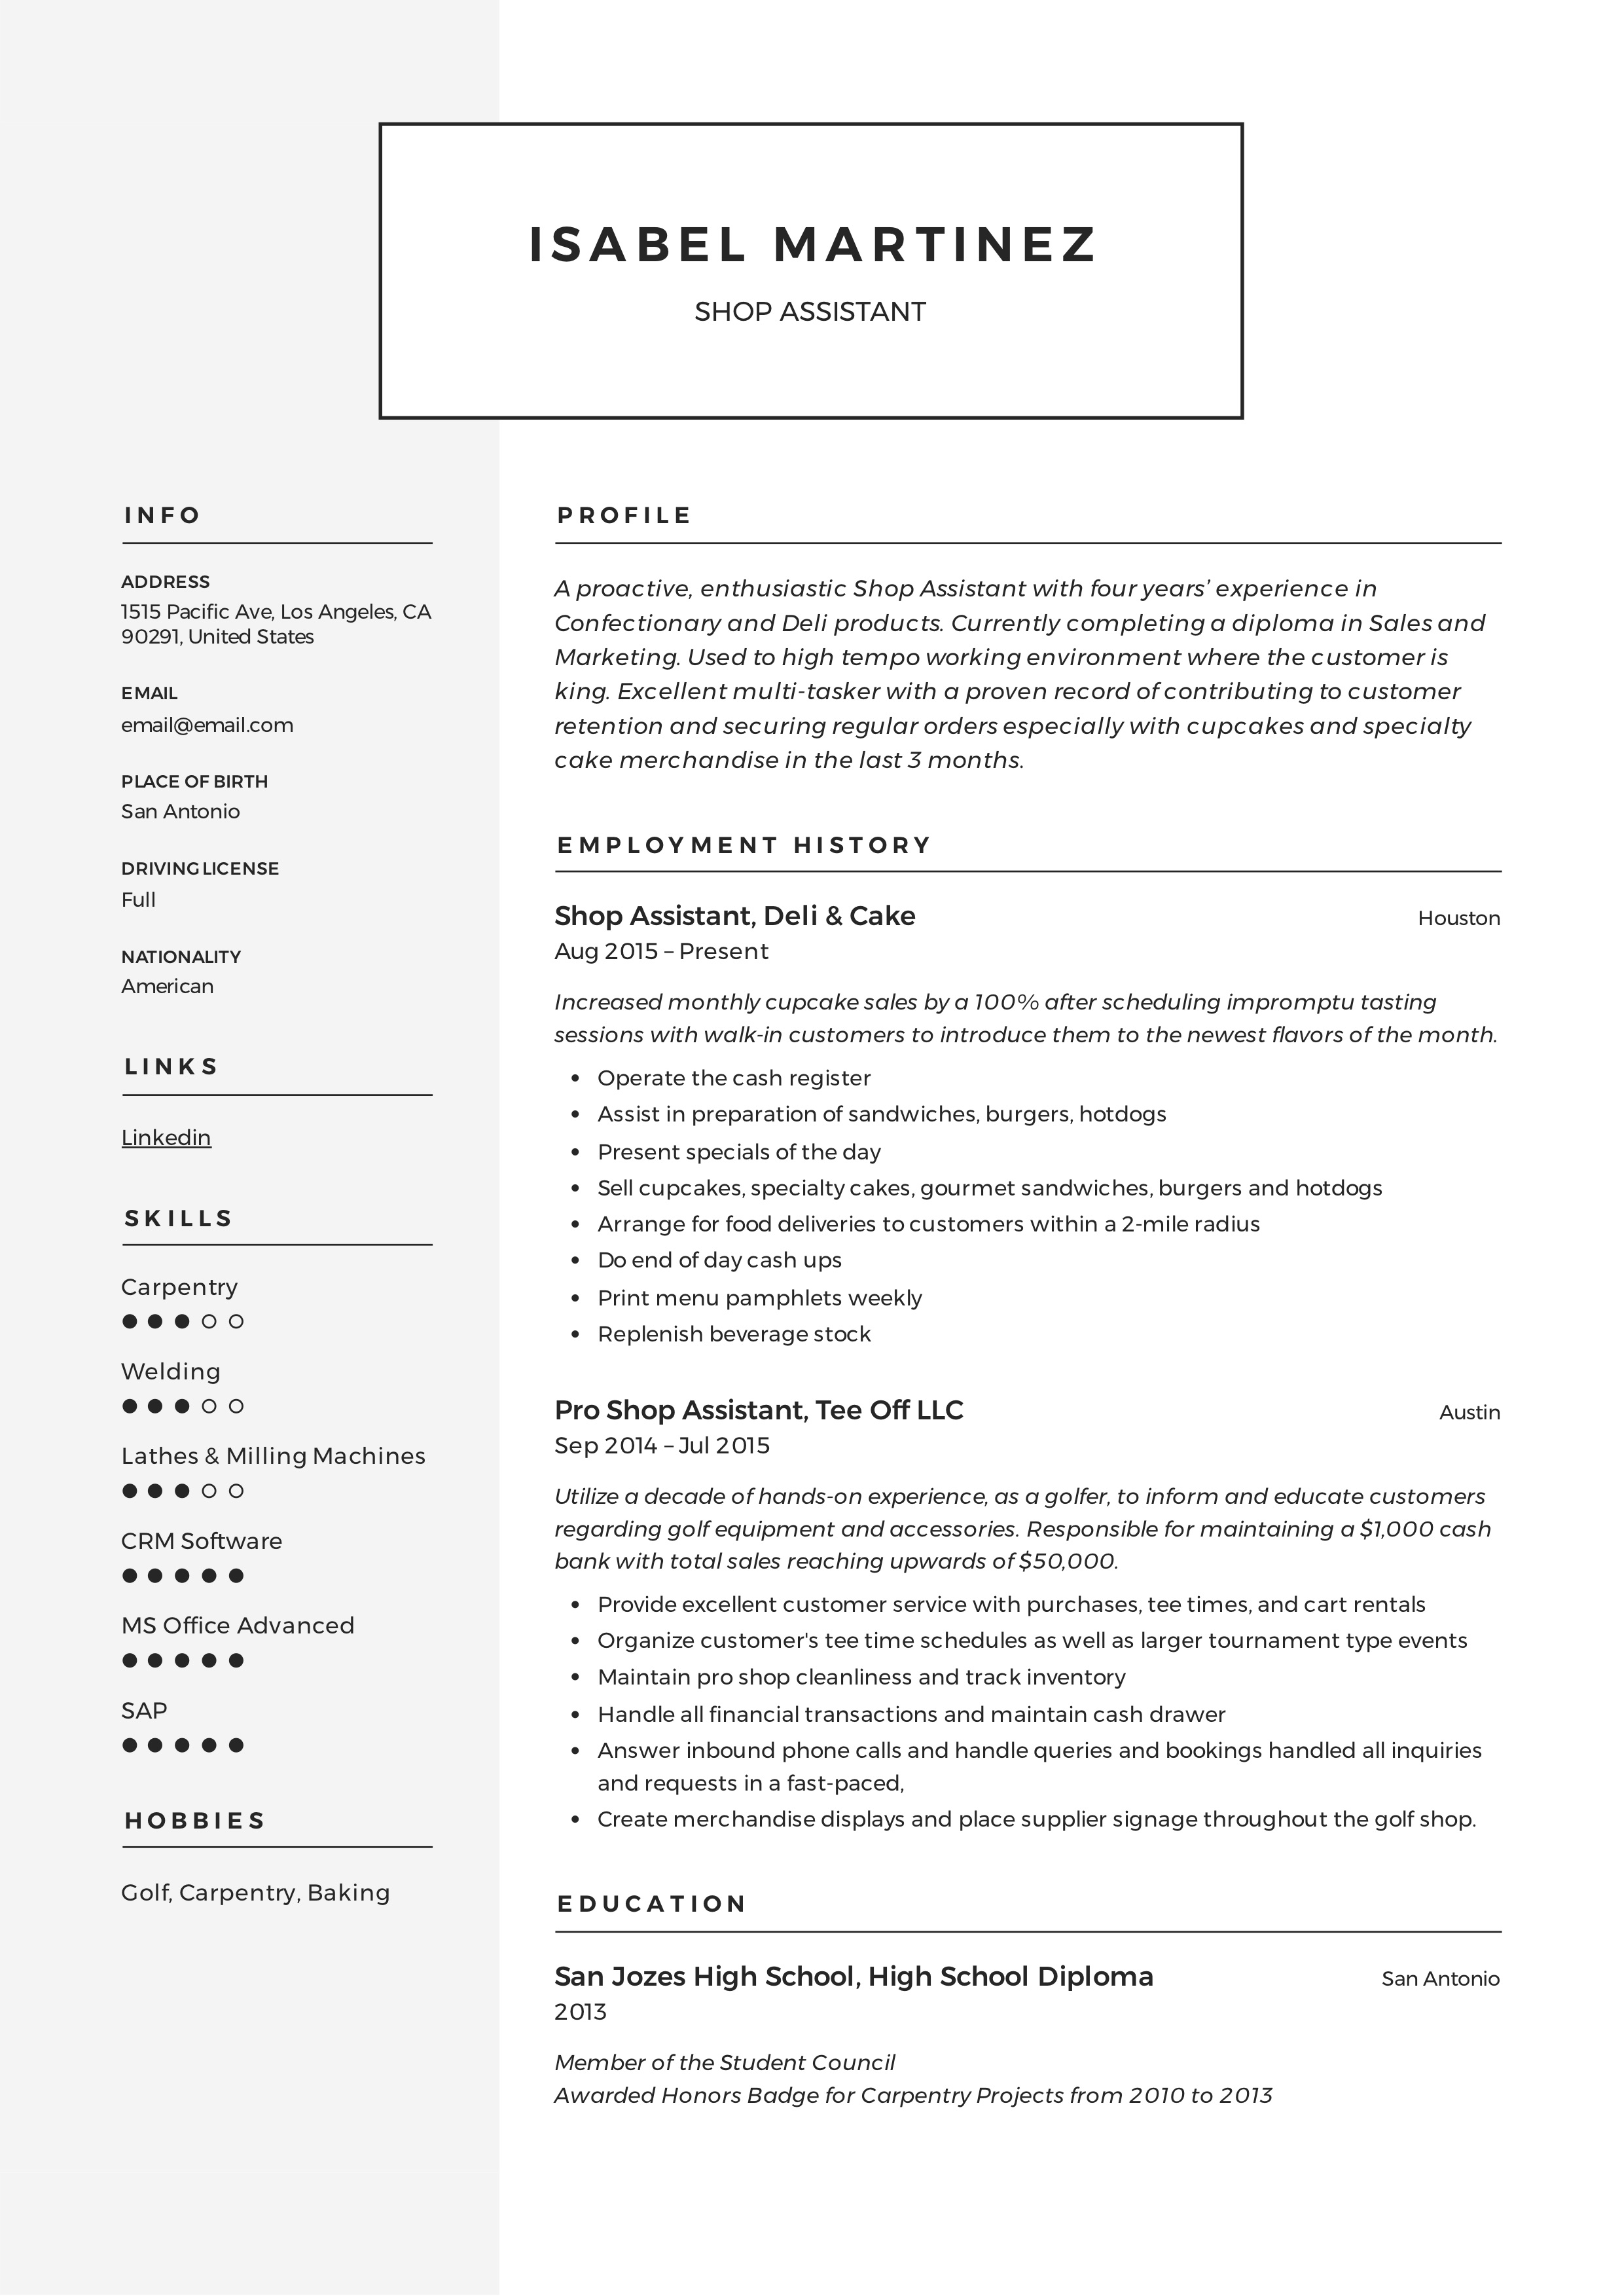 Shop Assistant Resume Example   Writing Guide   PDF